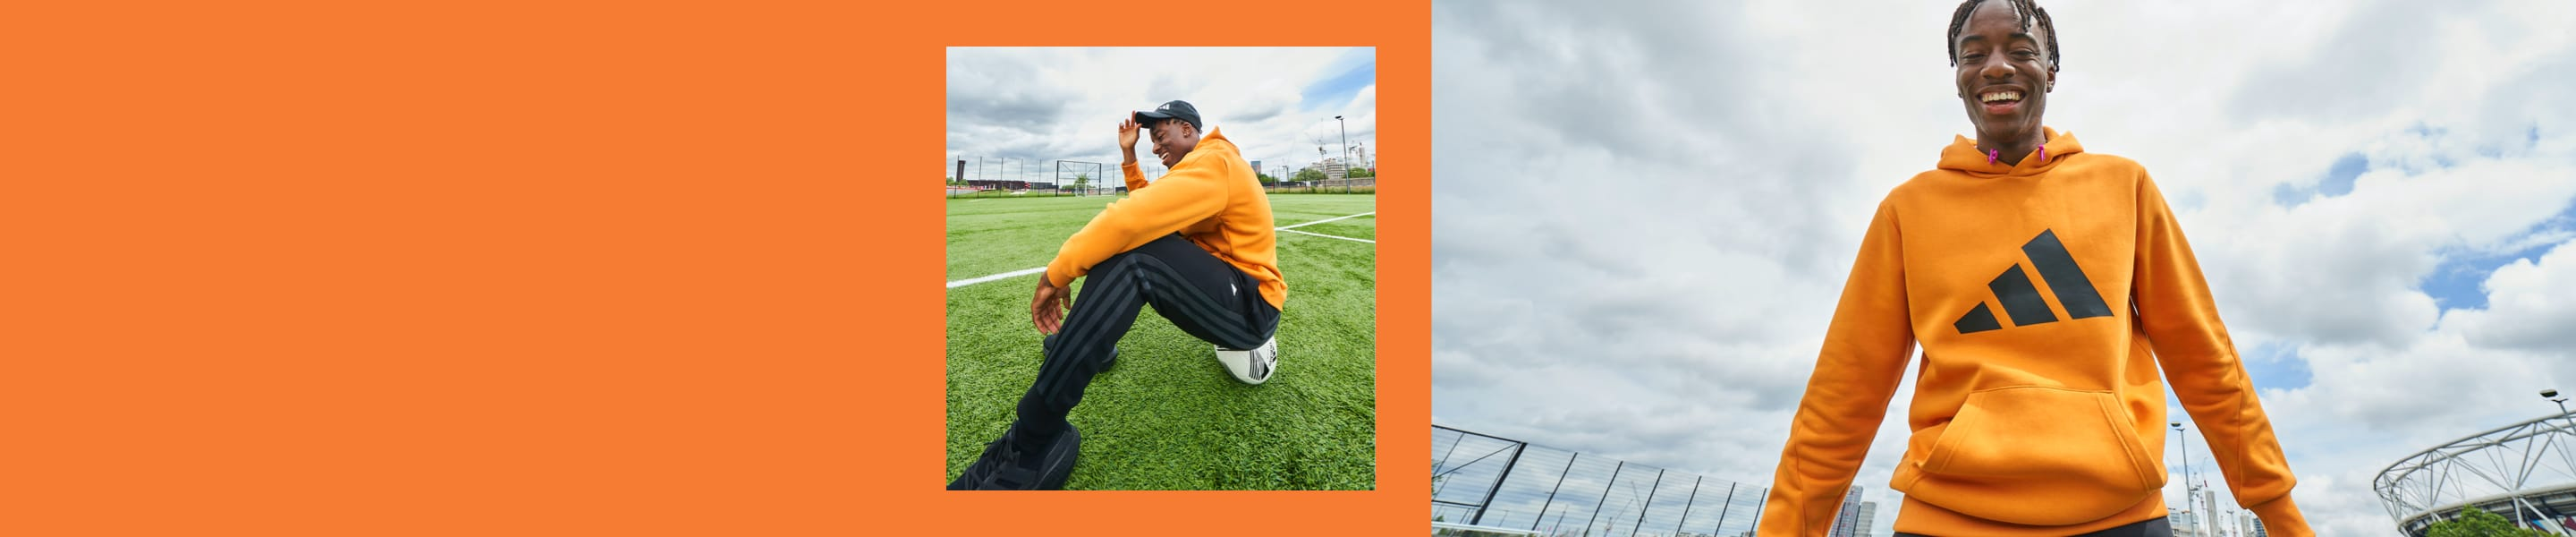 English footballer Noni Madueke looks up at the camera, smiling, as he stands on a football pitch in an orange adidas hoody.